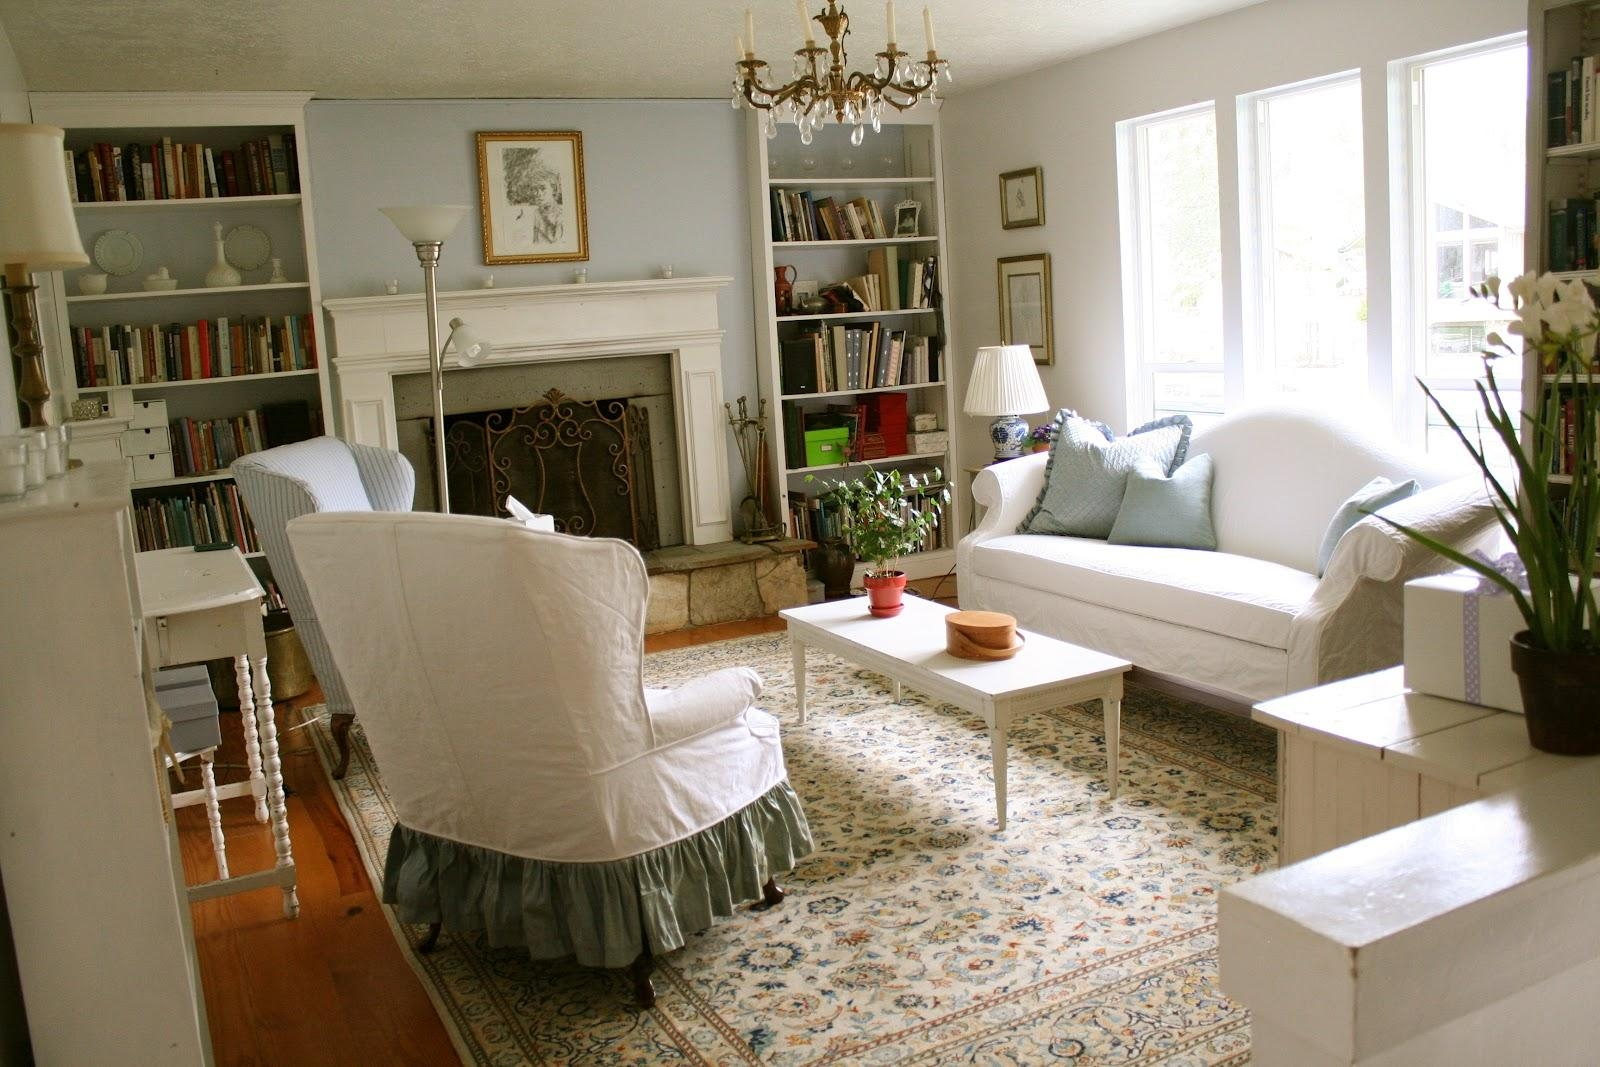 Custom Slipcoversshelley: White Camel Back Couch Within Camelback Slipcovers (View 11 of 20)